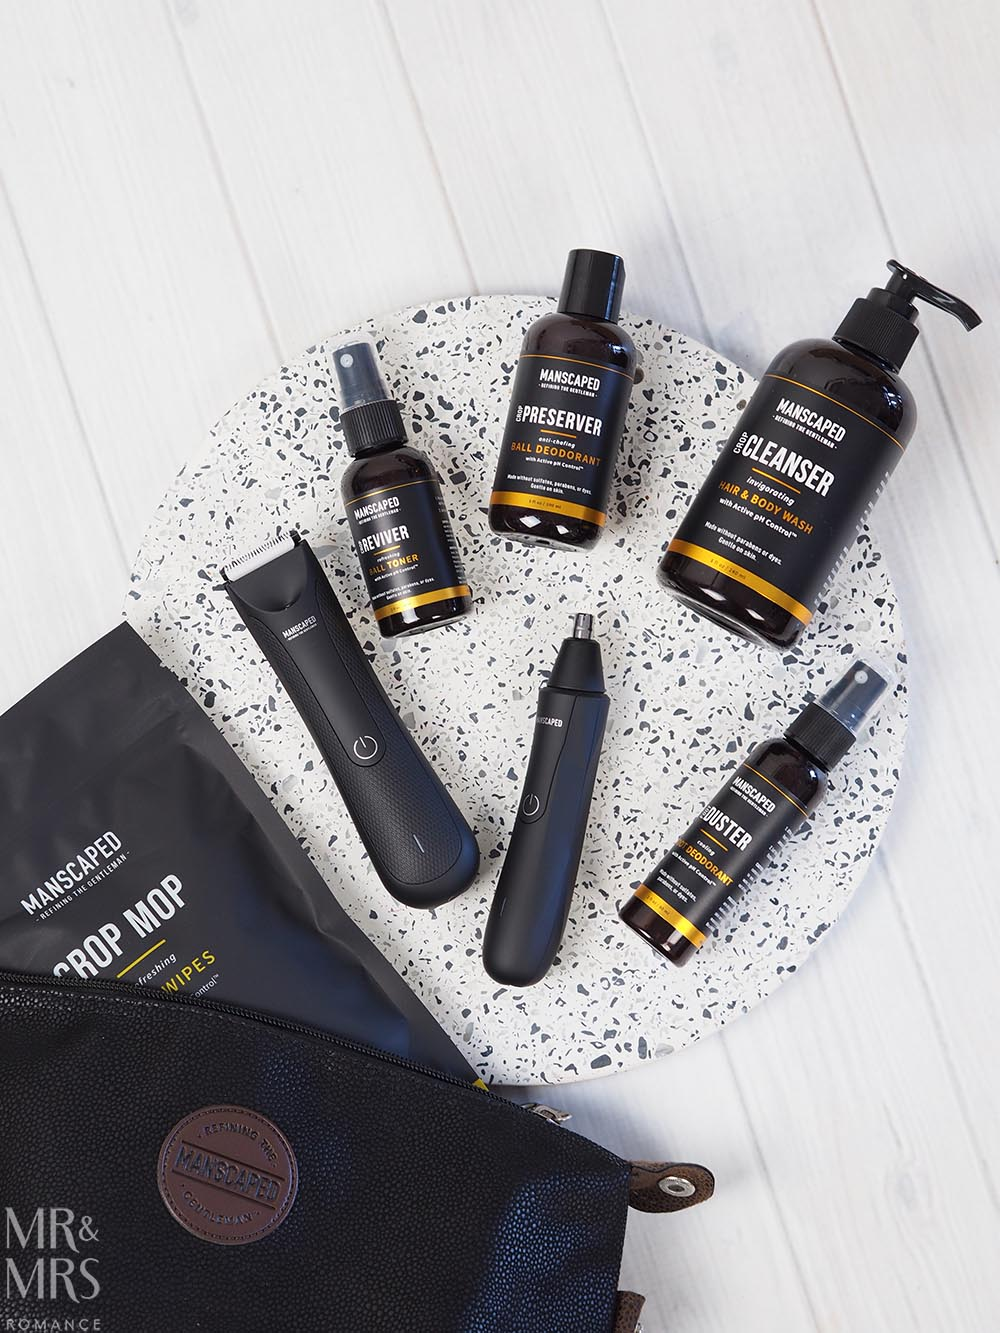 Skincare for Men - Manscaped products